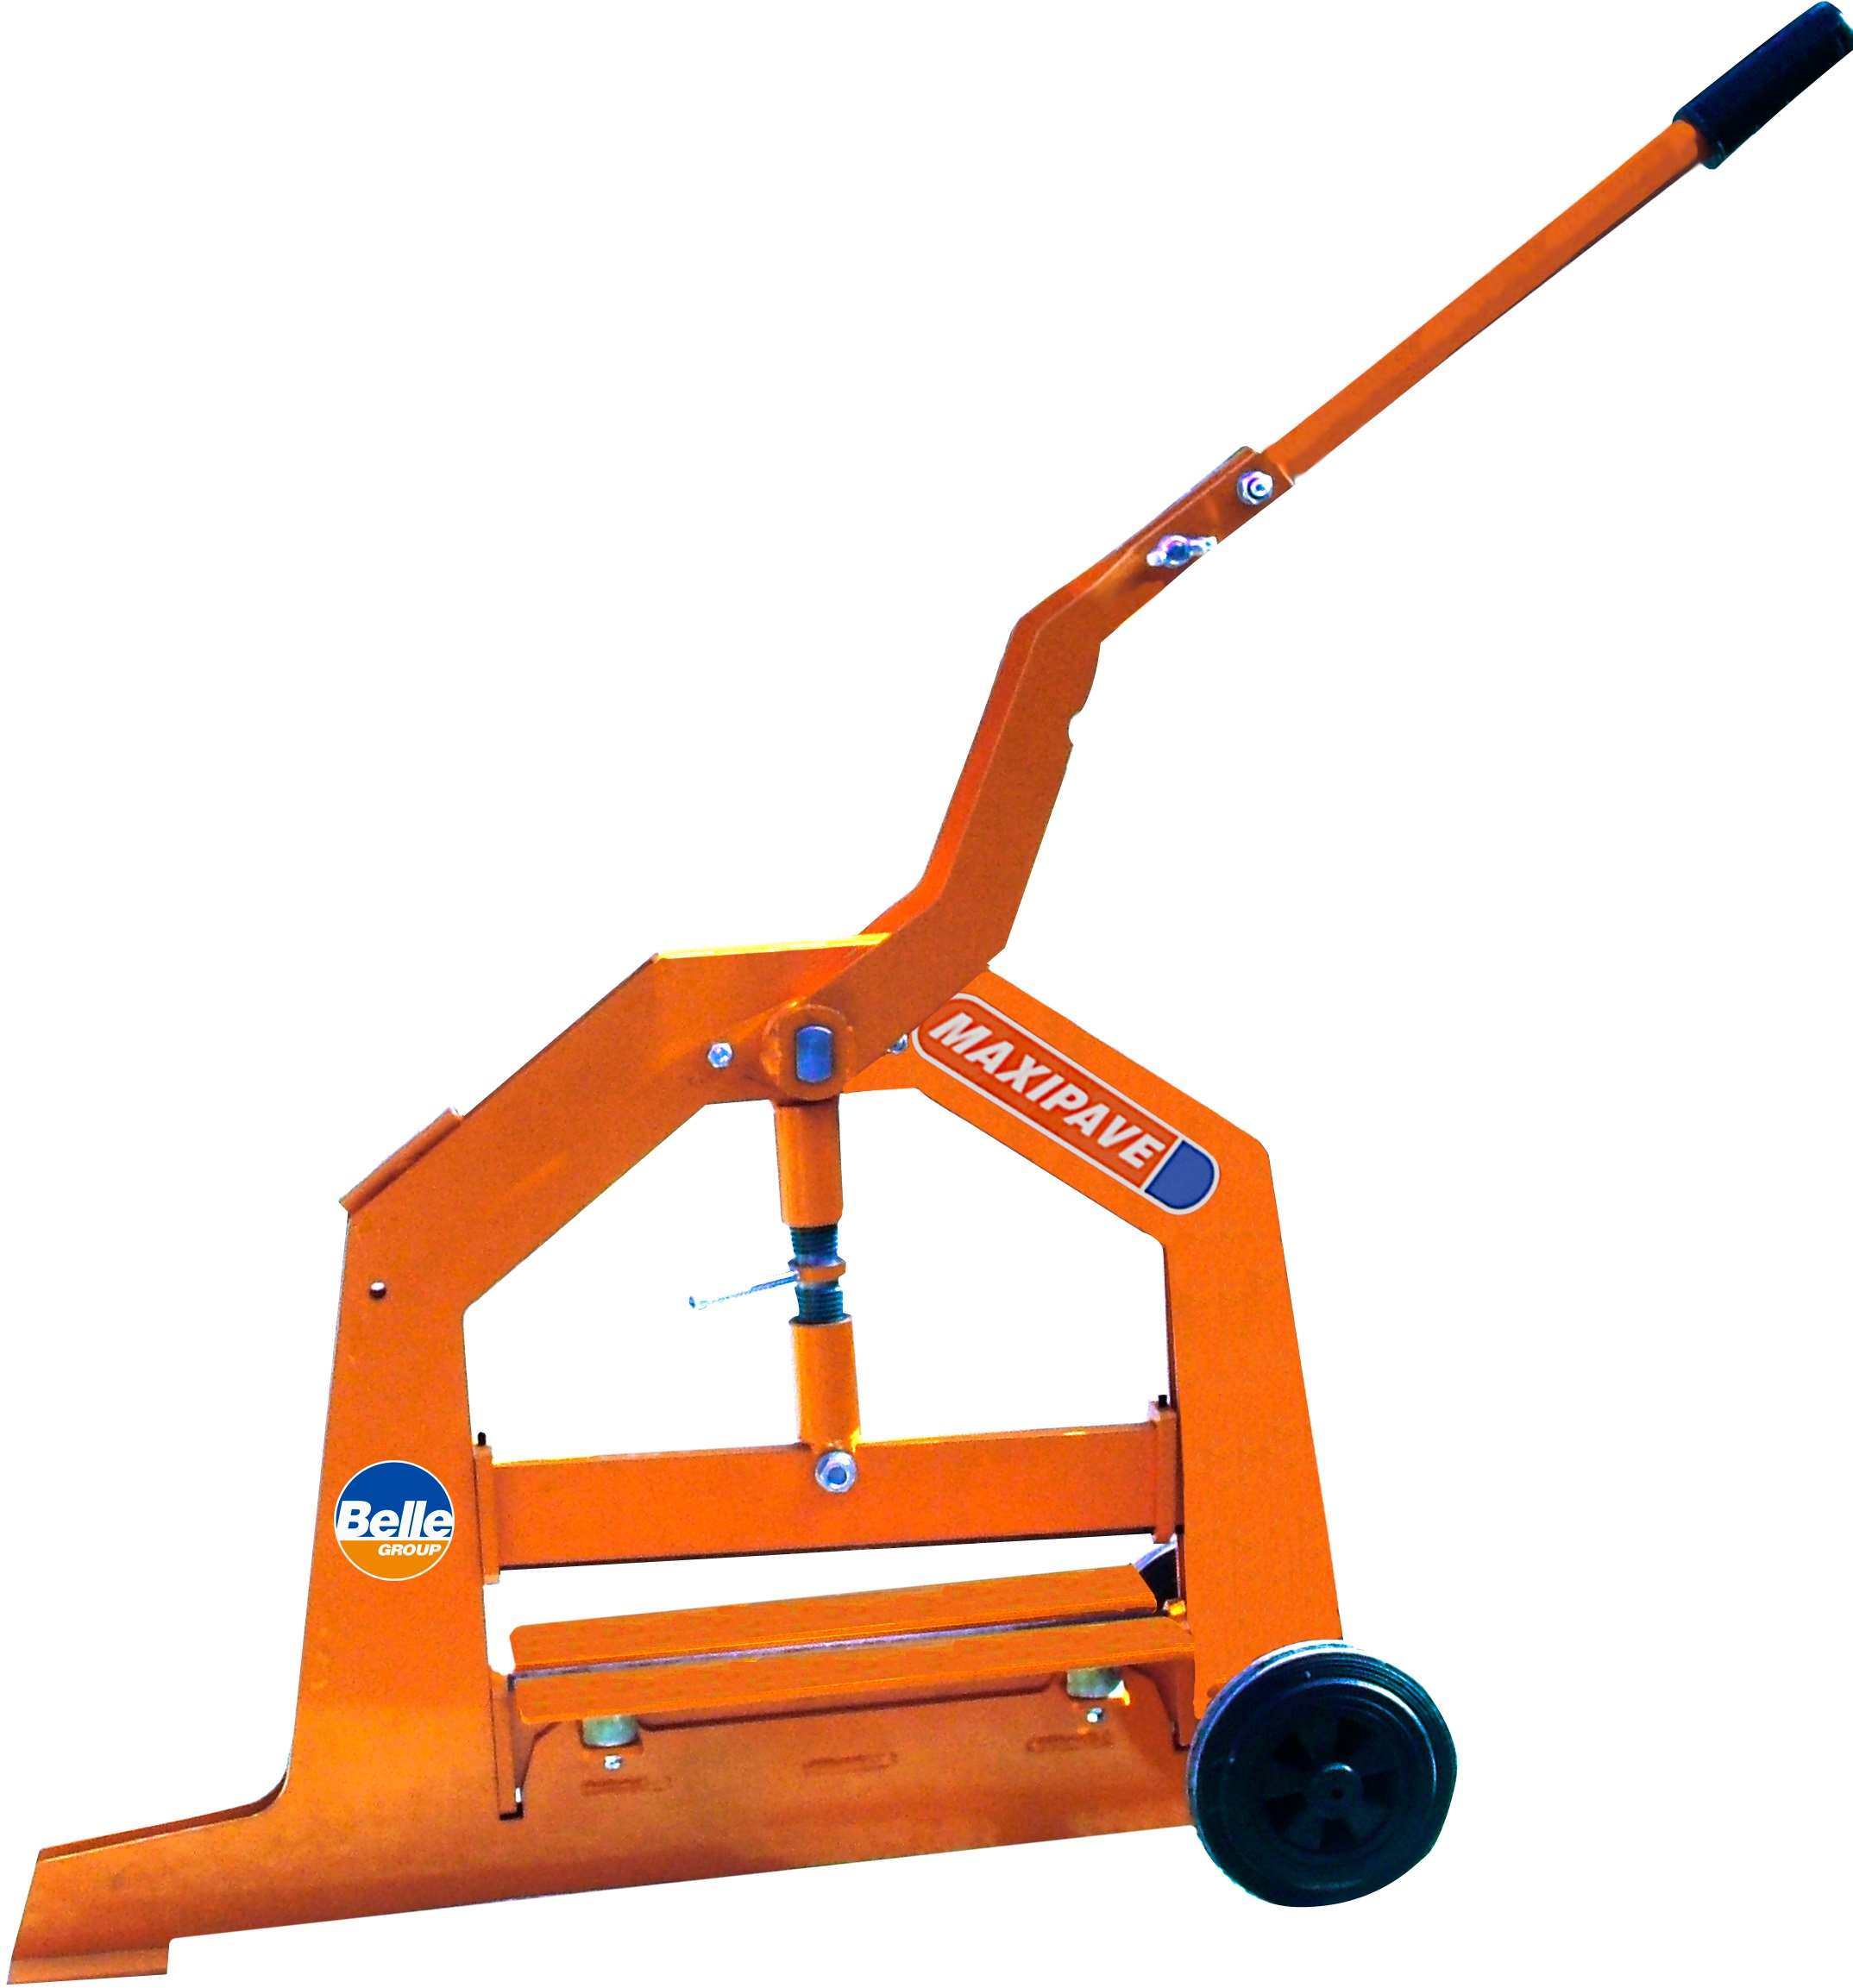 Orange metal Maxipave block cutter with long handle, wheels on the back and Belle branding on the side